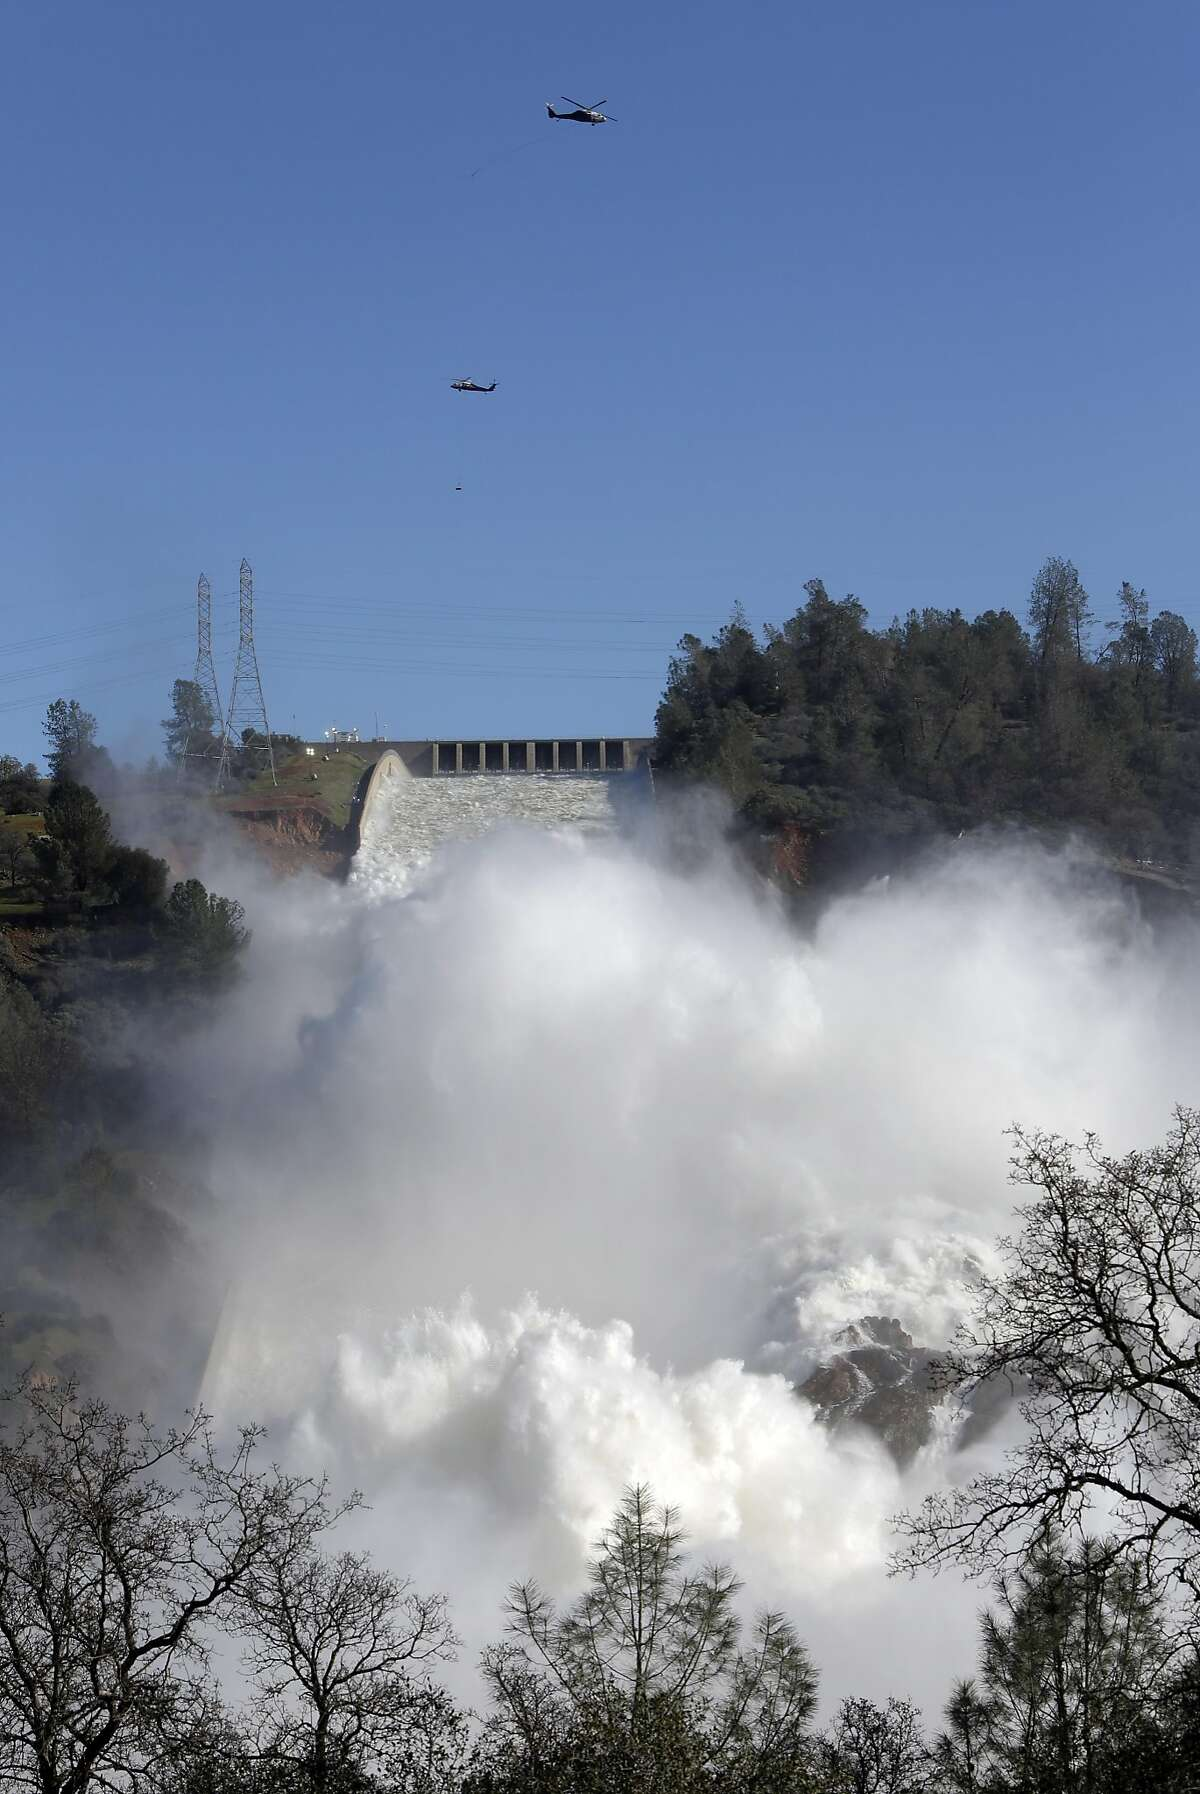 Helicopters continue to stabilize the emergency spillway next to the main Oroville Dam spillway as water is released on Tuesday Feb. 14, 2017, in Oroville, Ca.